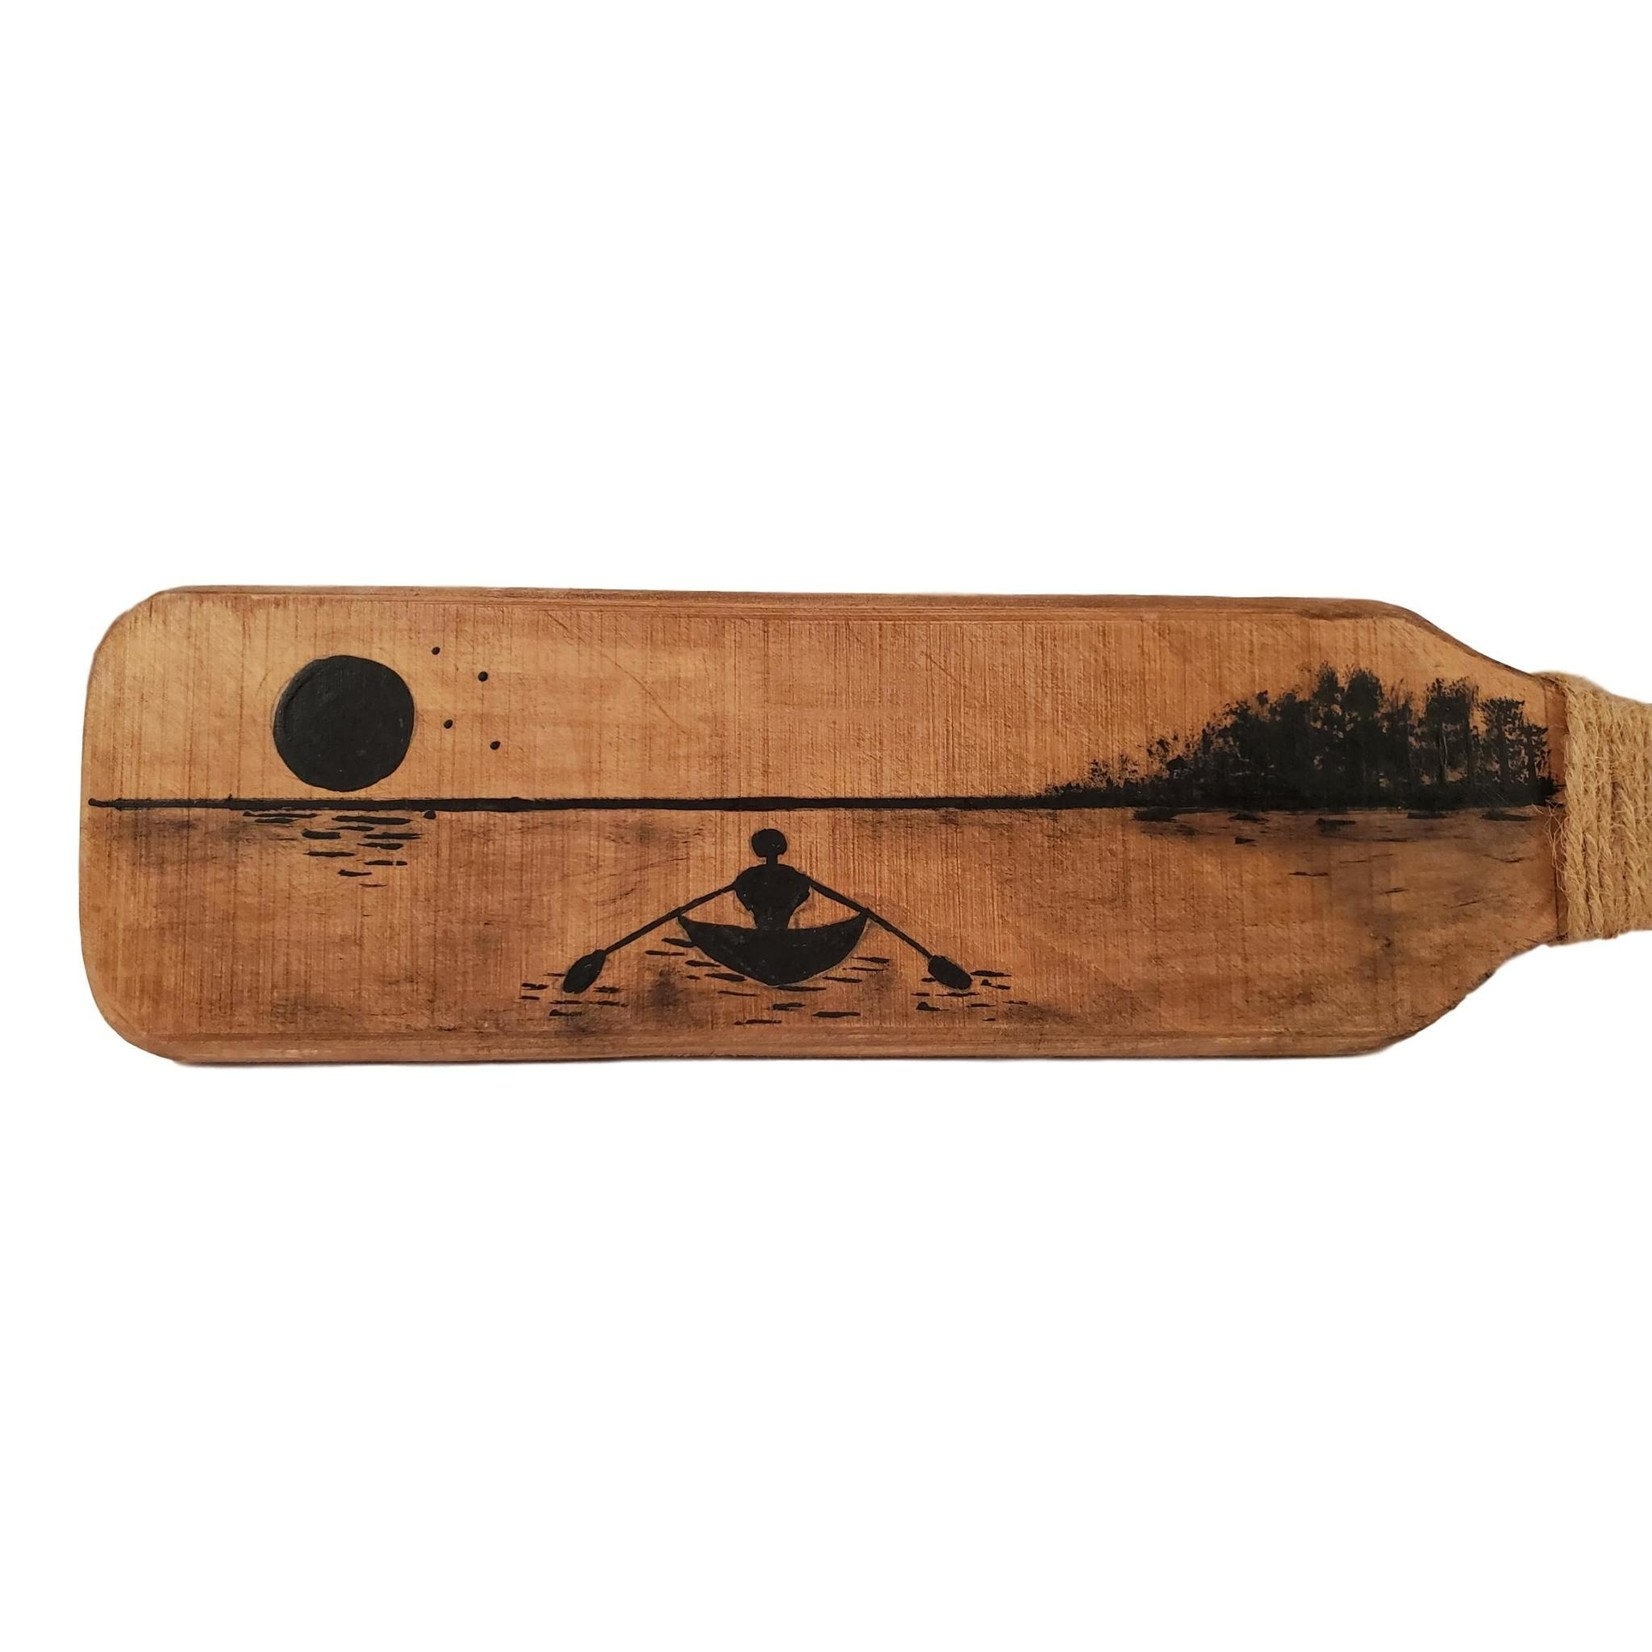 Off The Wall Gallery Handpainted Wall Hanging Paddle - Kayaker Silhouette